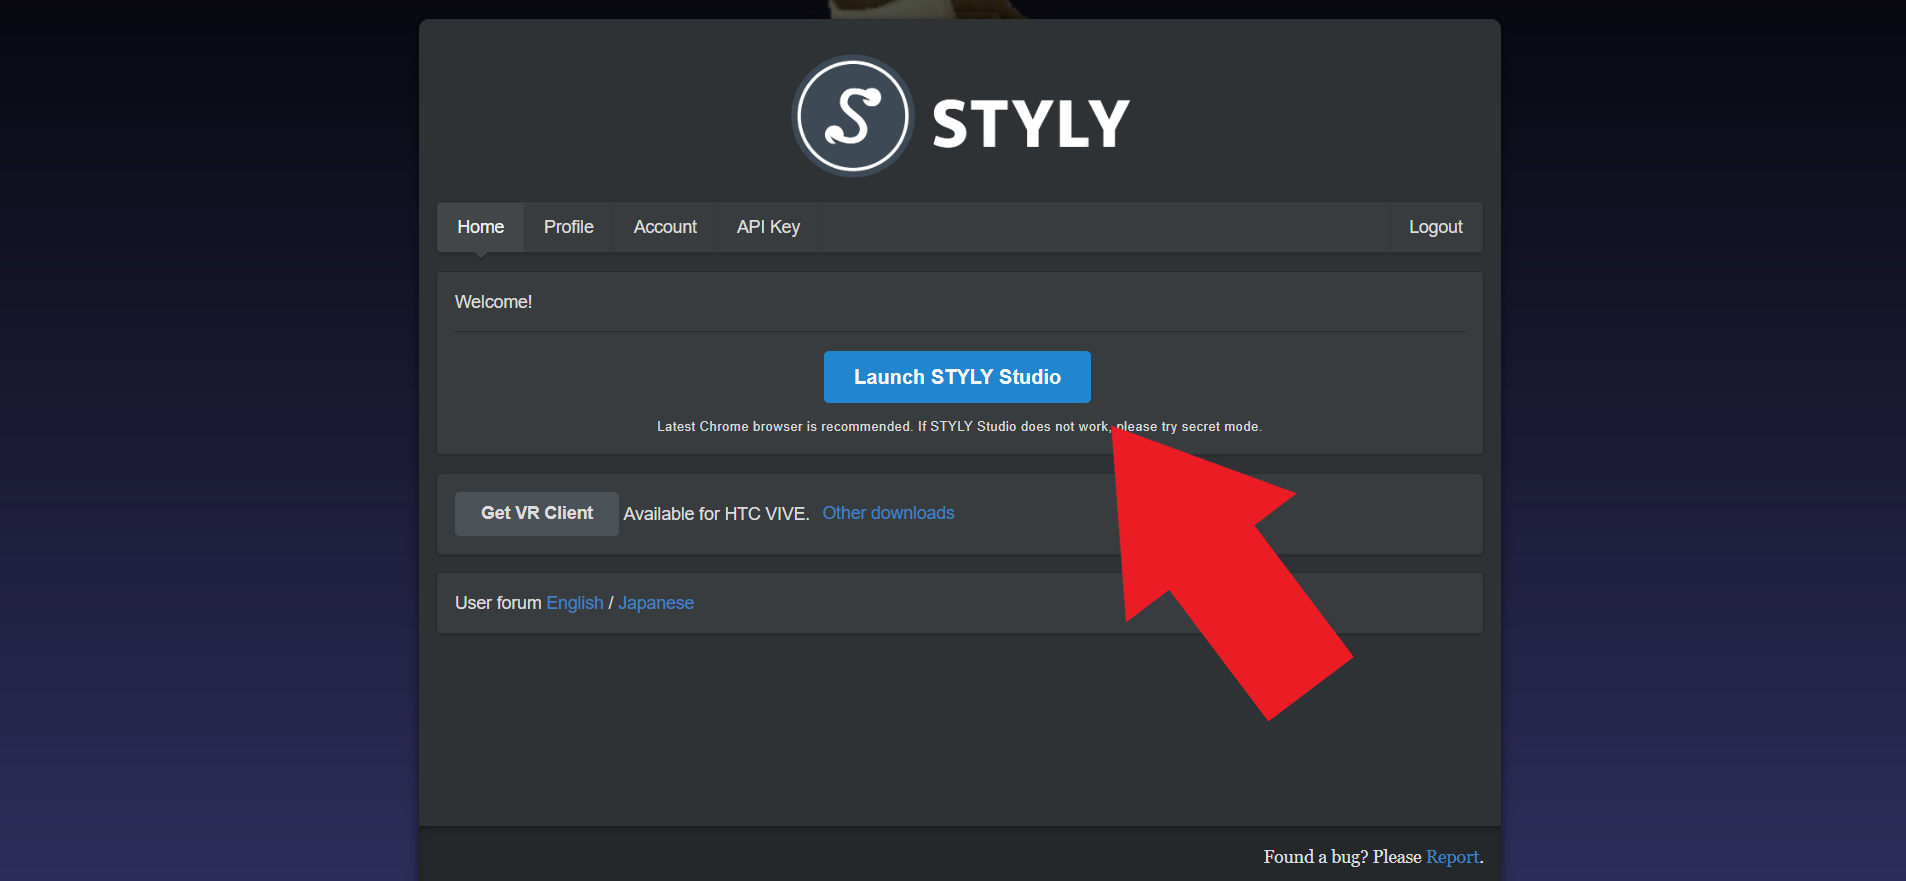 Launch STYLY Studioをクリック